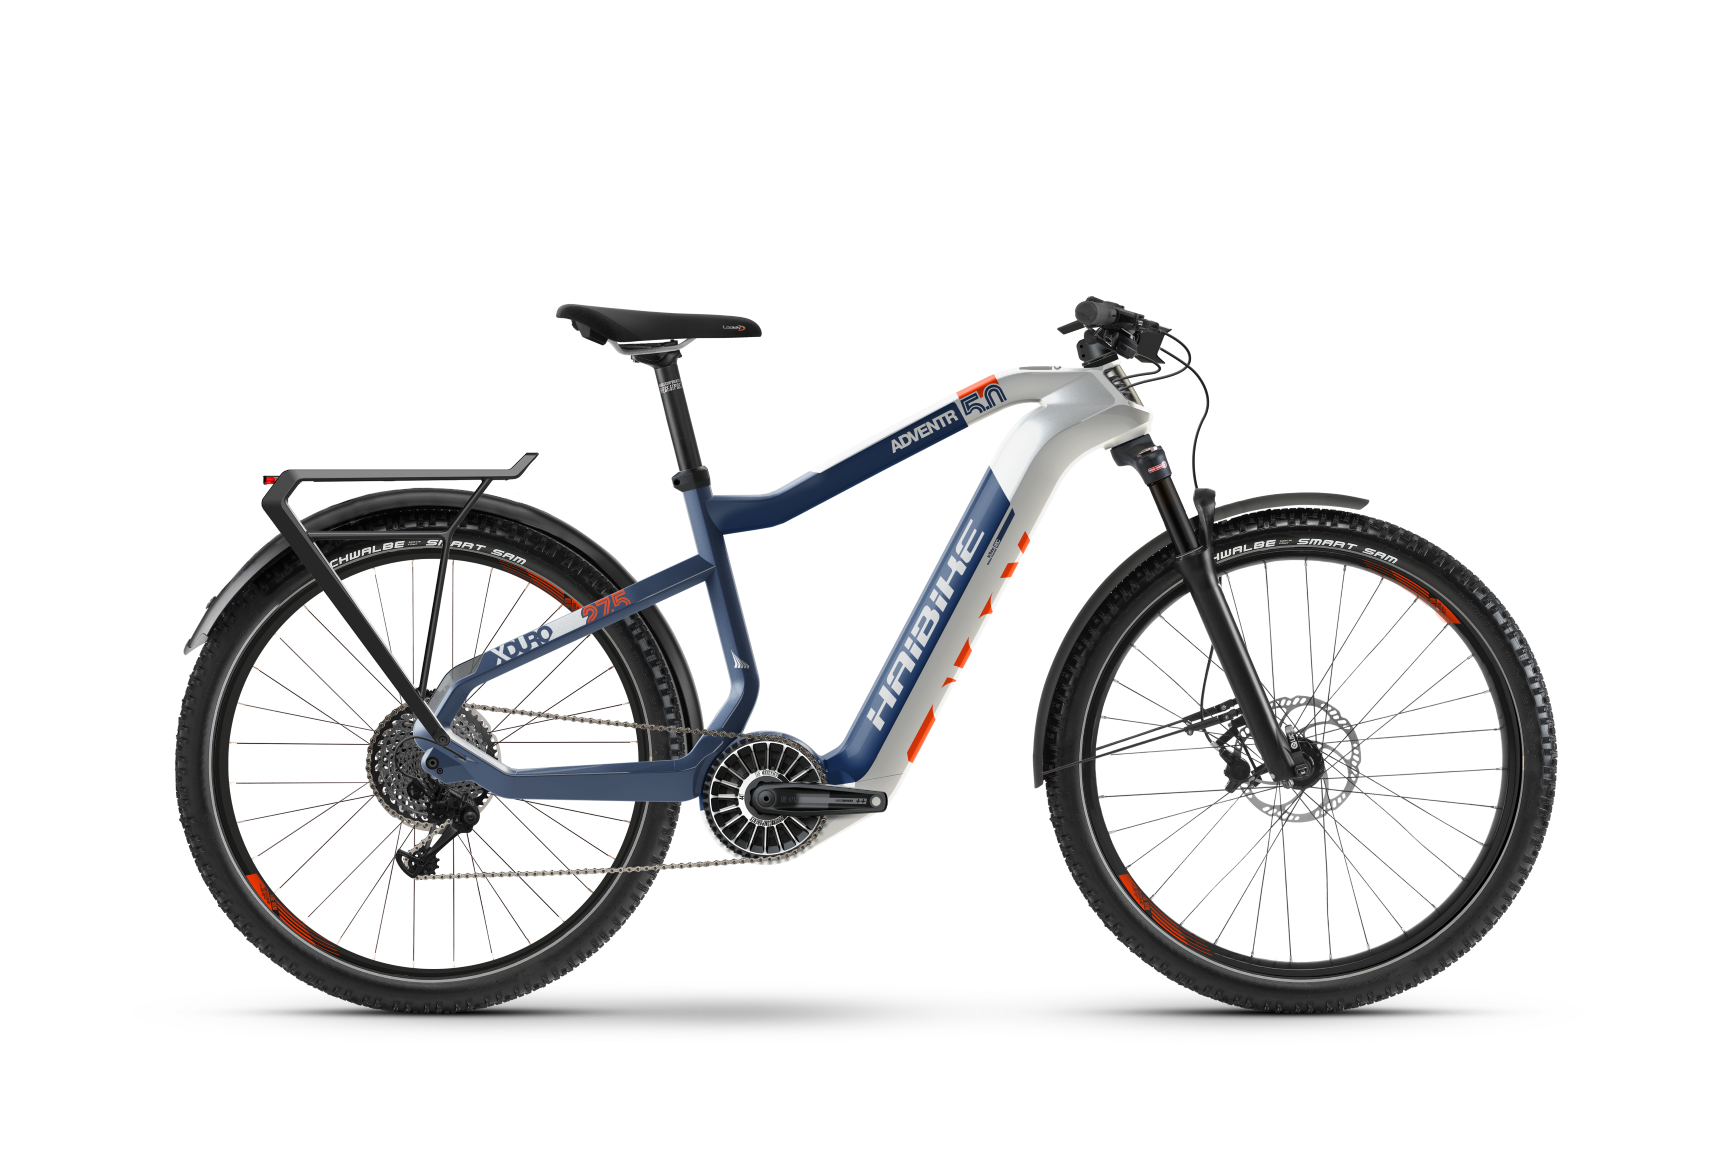 HA04 - Haibike Xduro Adventr 5.0 vel. M